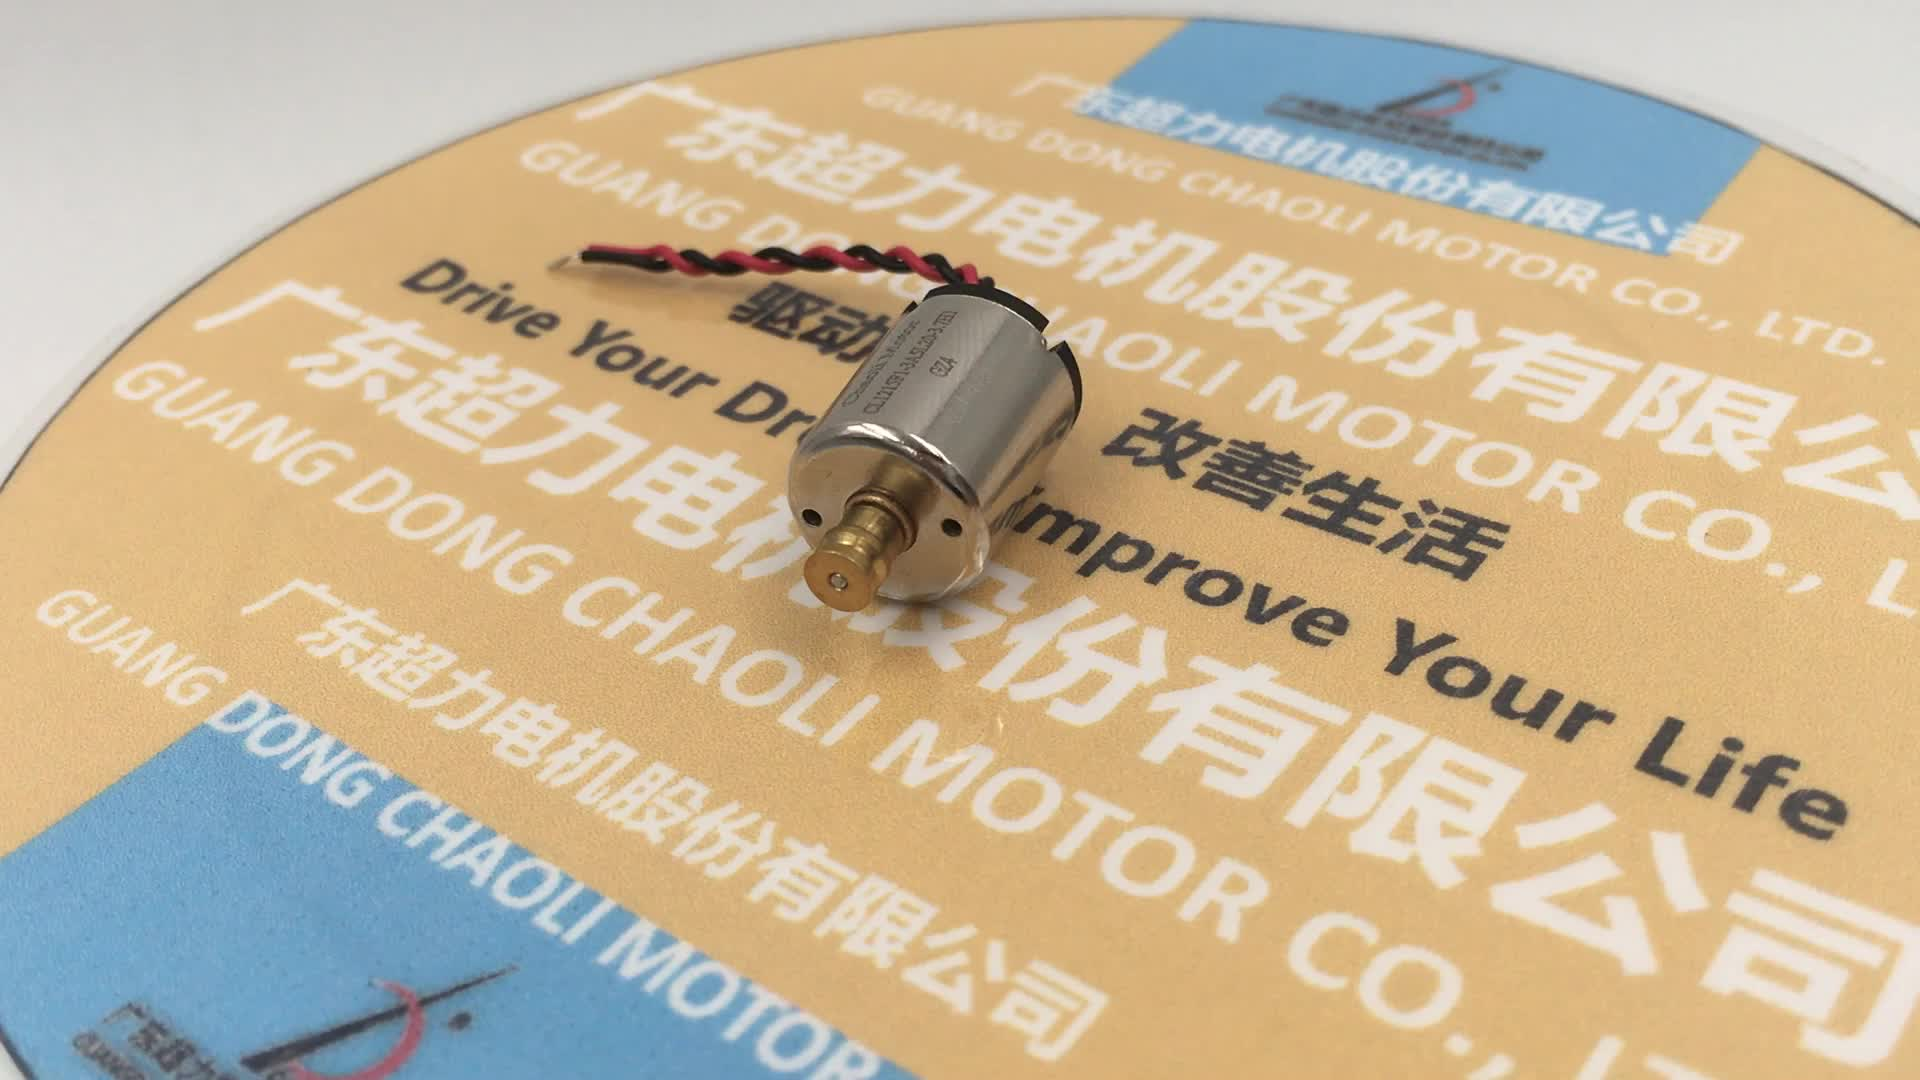 Electronic lock motor CL-1215 with coreless coil and 3.7V for mini camera and robot-chaoli2016